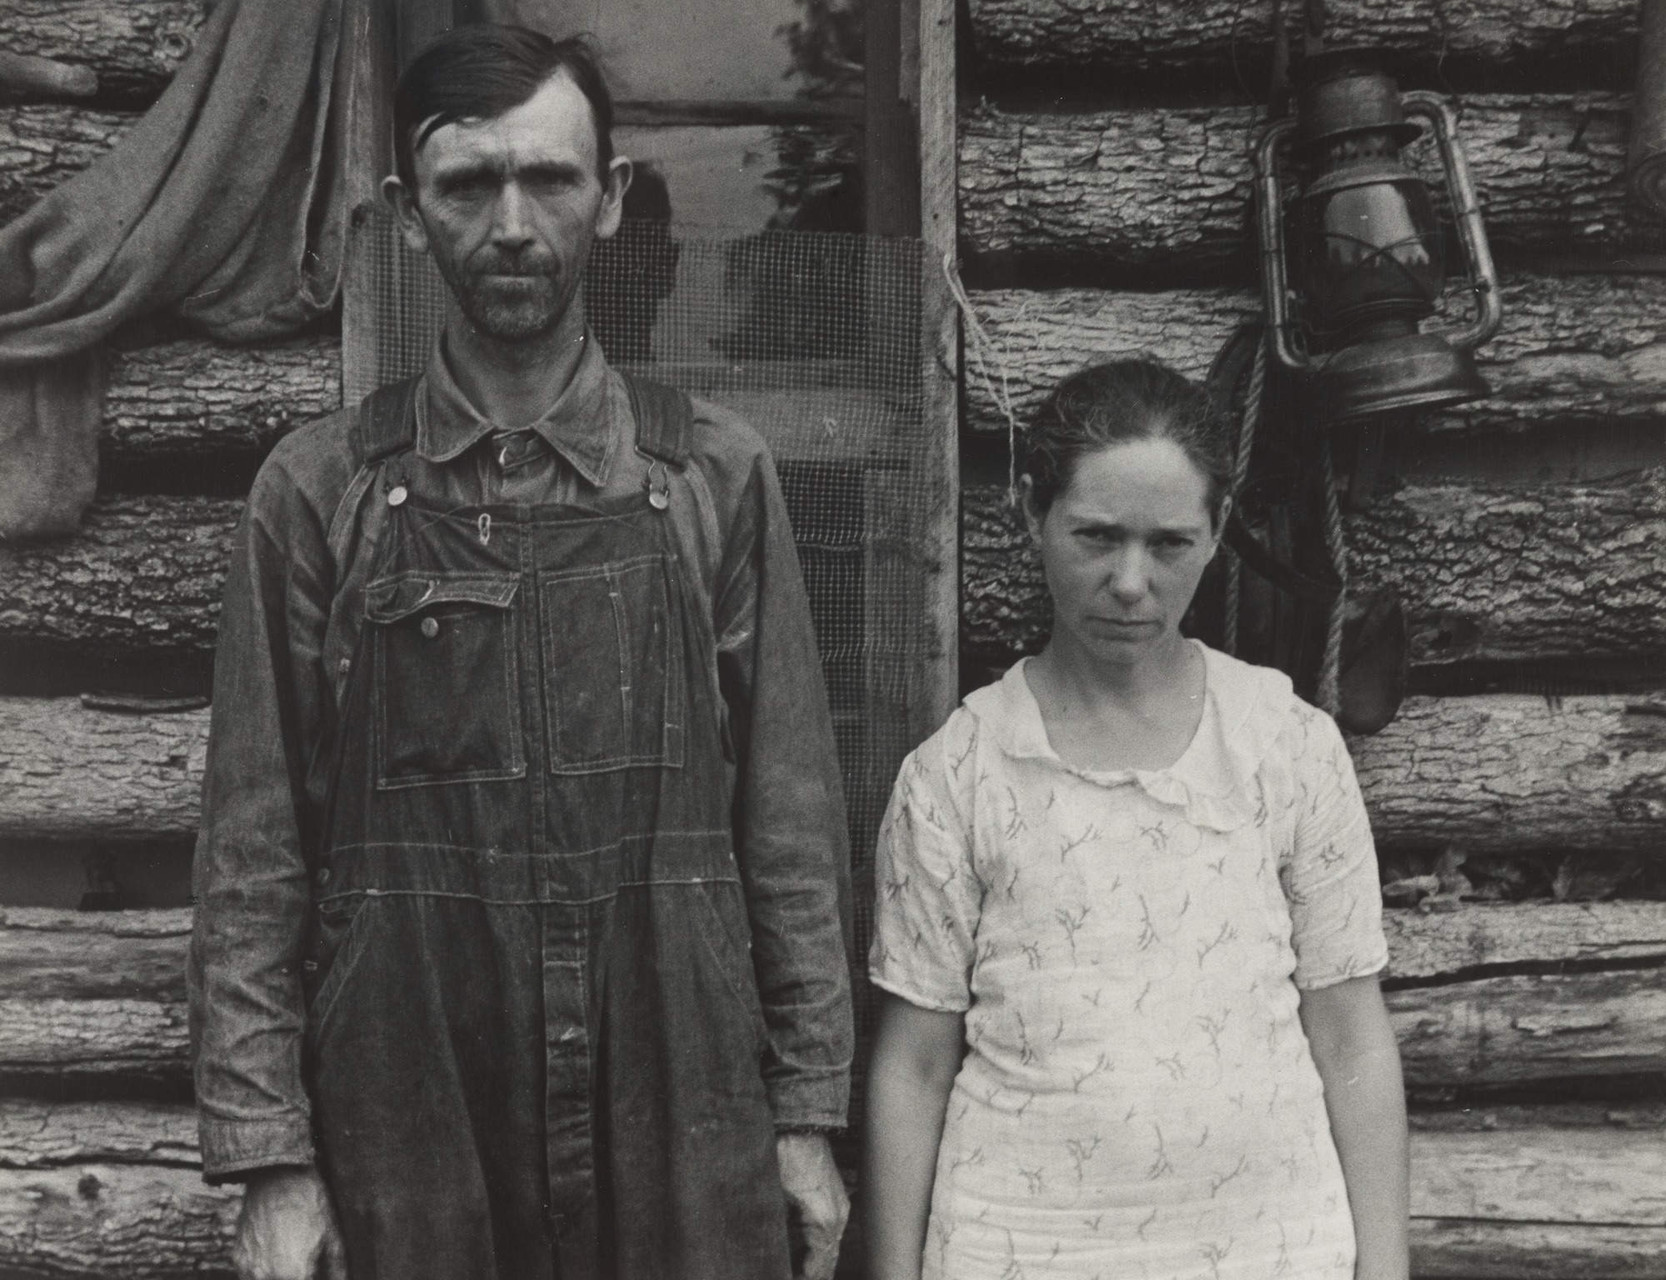 Rural rehabilitation clients. Boone County, Arkansas (1935). Ben Shahn